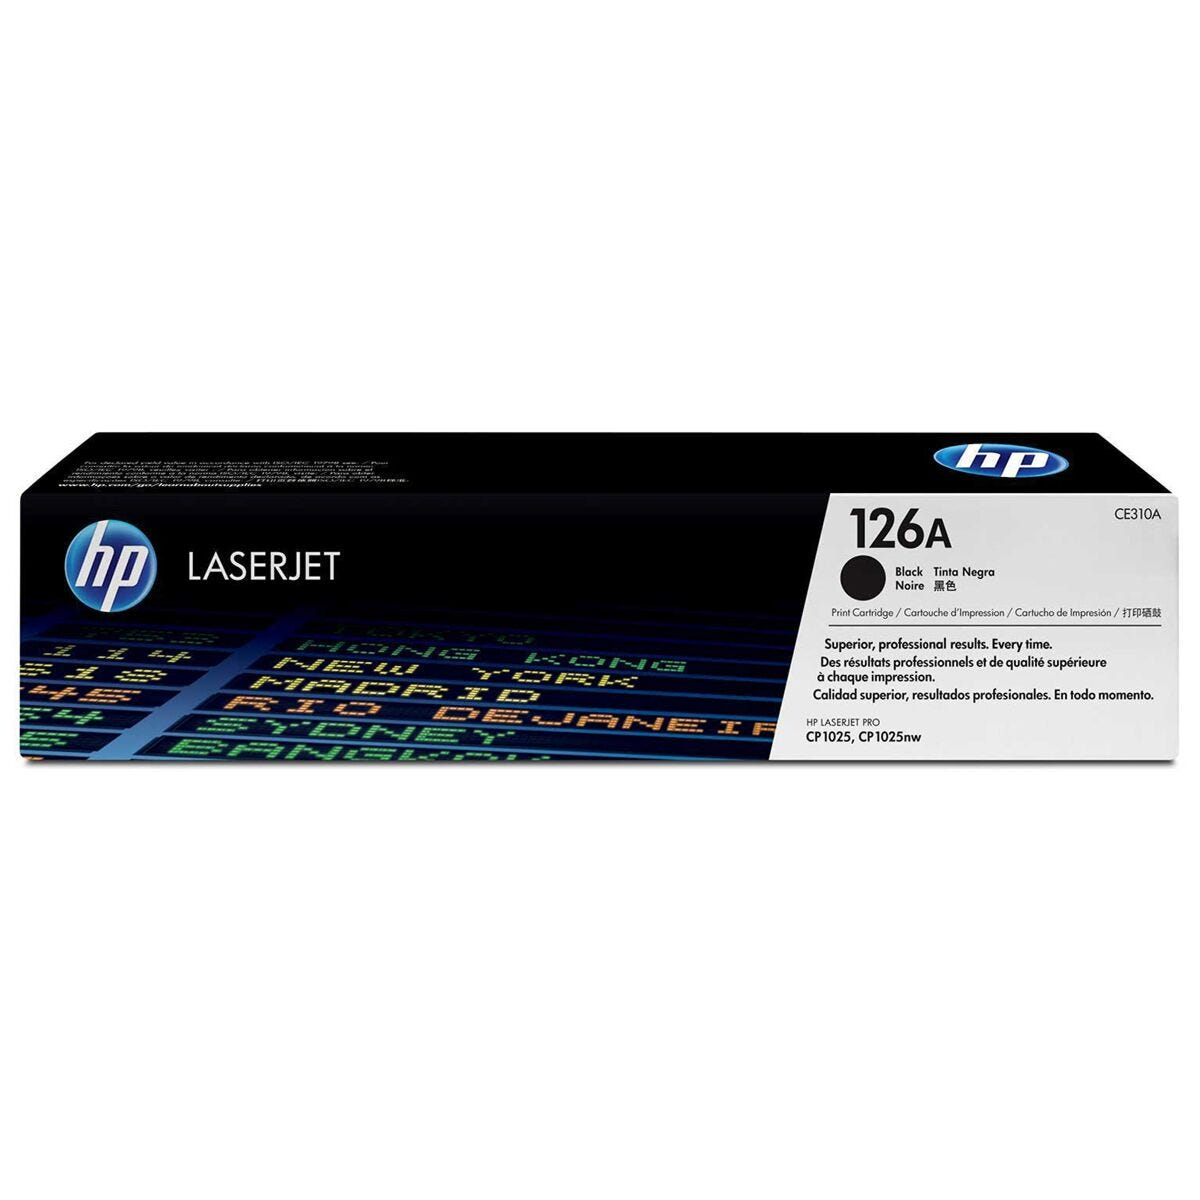 HP 126A Black Original LaserJet Toner Cartridge CE310A